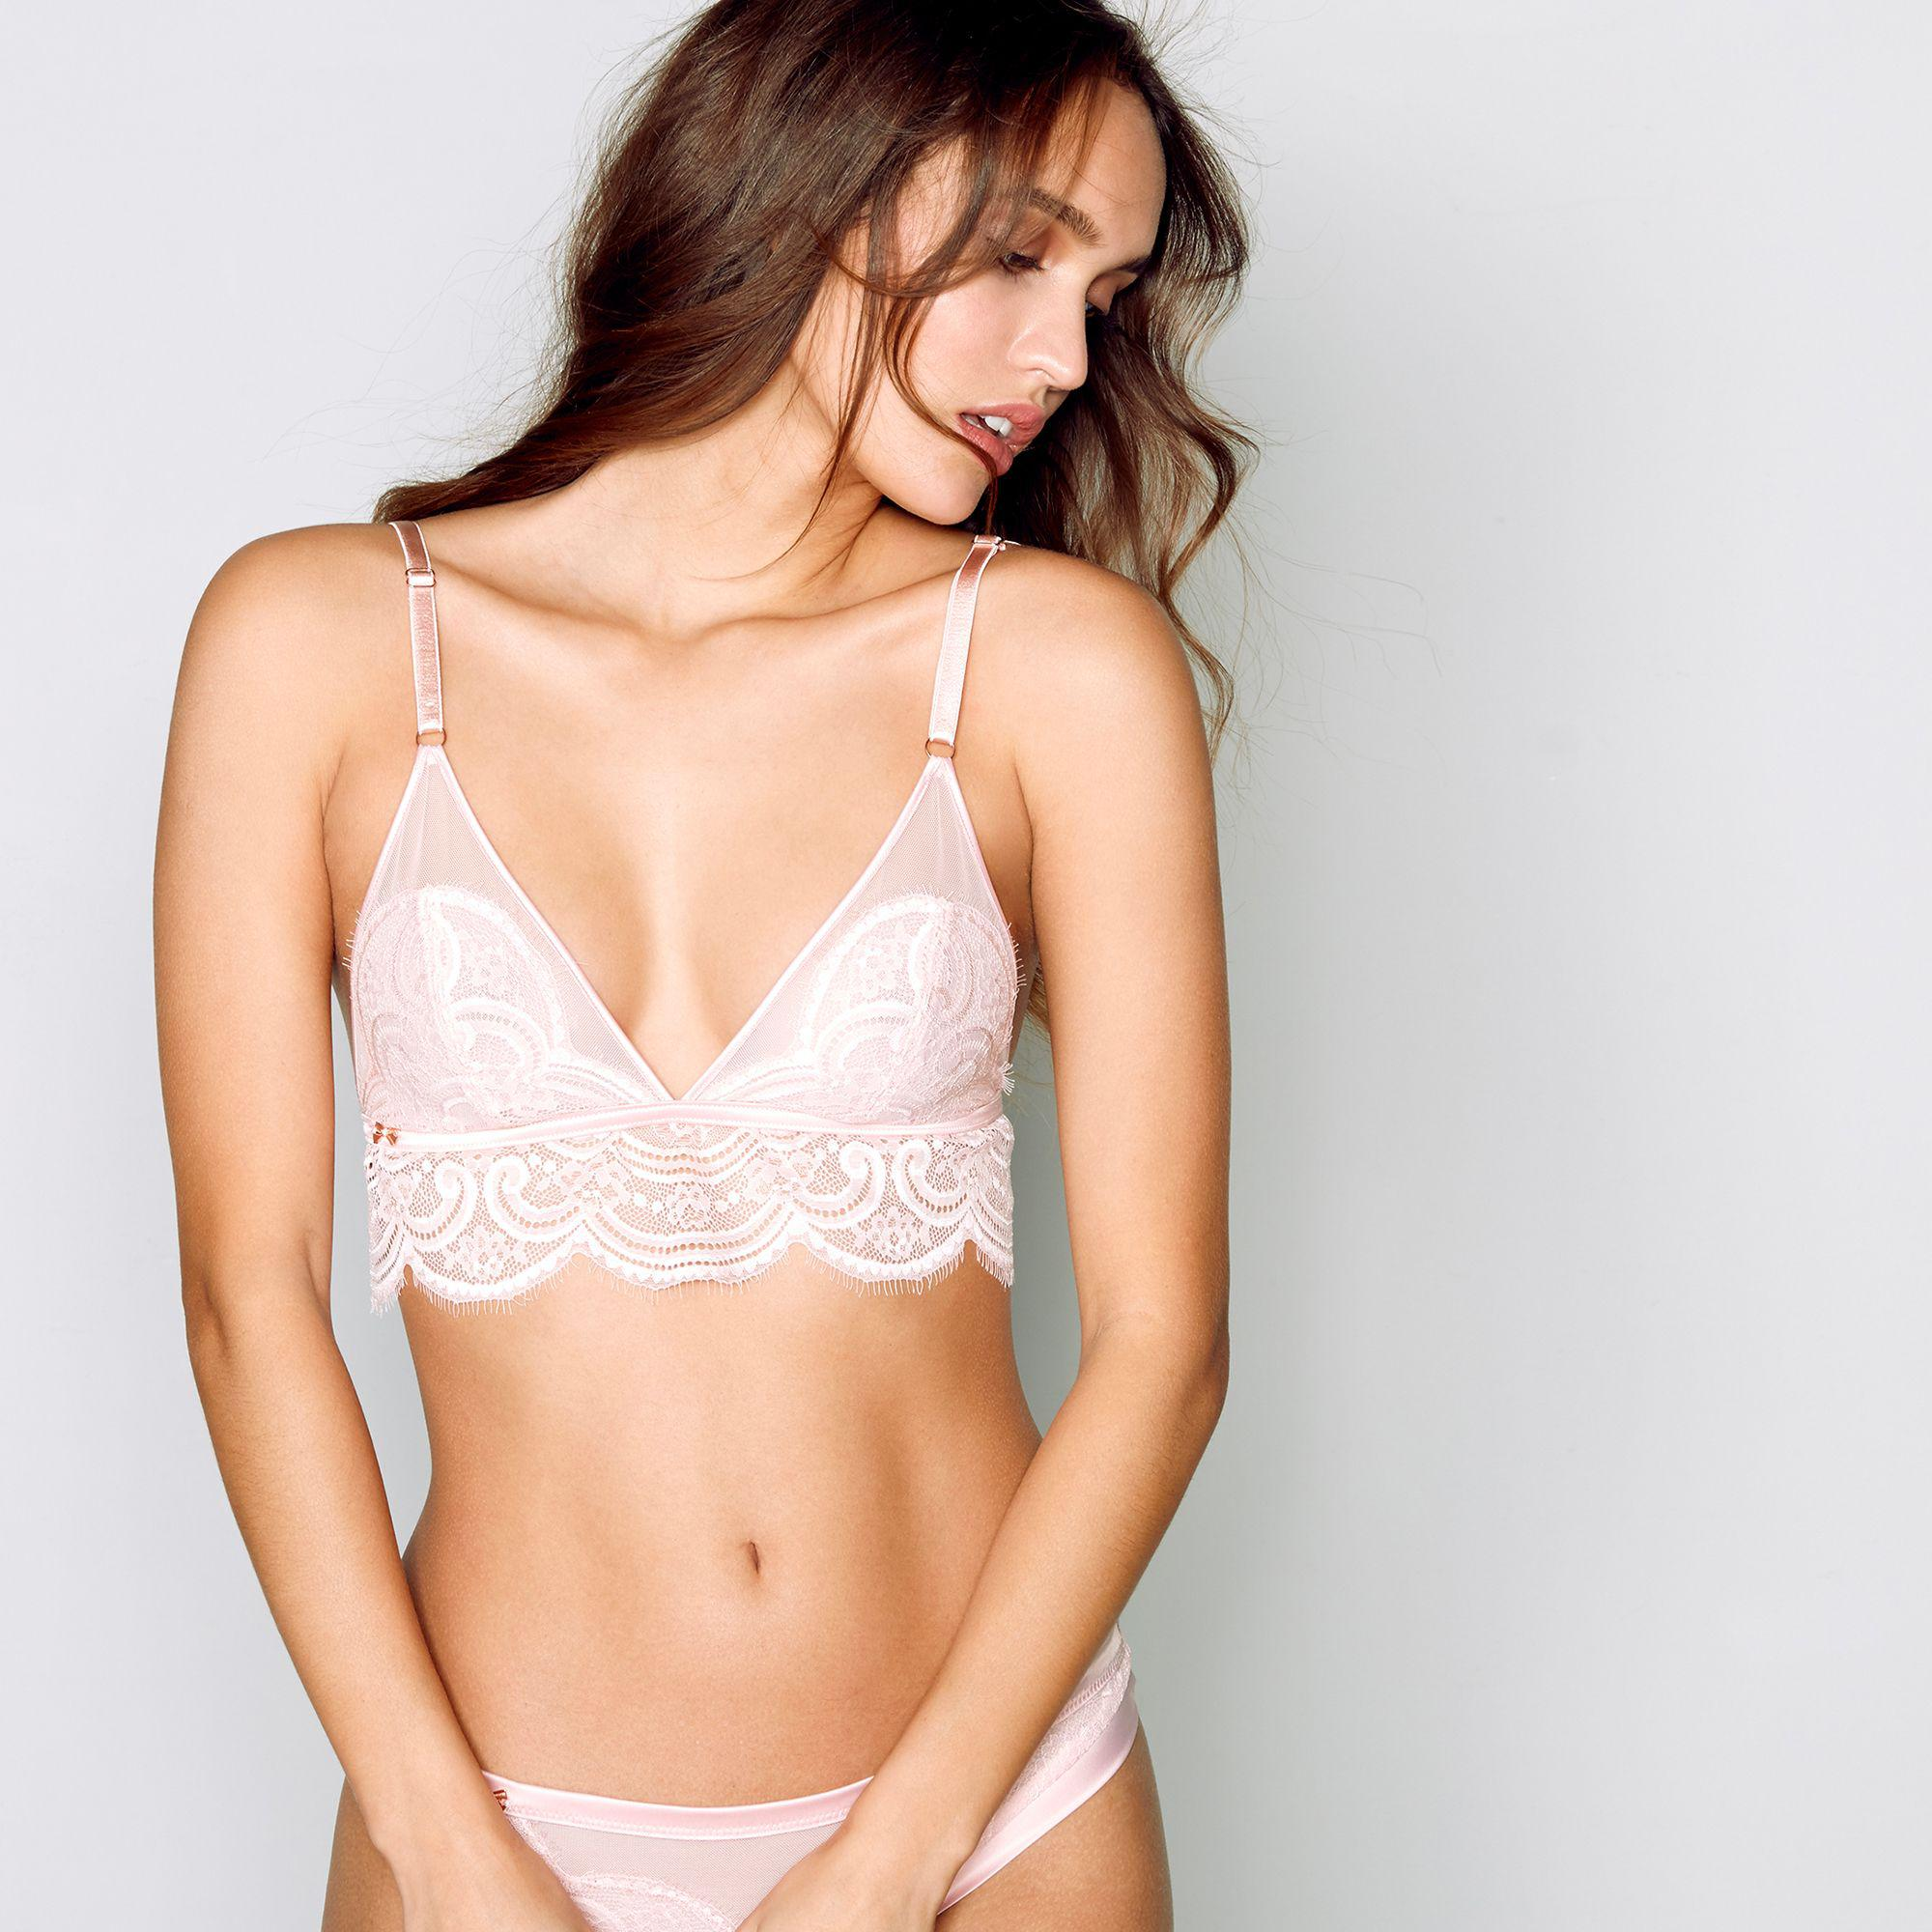 50ec9f8ebd0e56 Ted Baker - Pink Lace Non-wired Non-padded Bralette - Lyst. View fullscreen